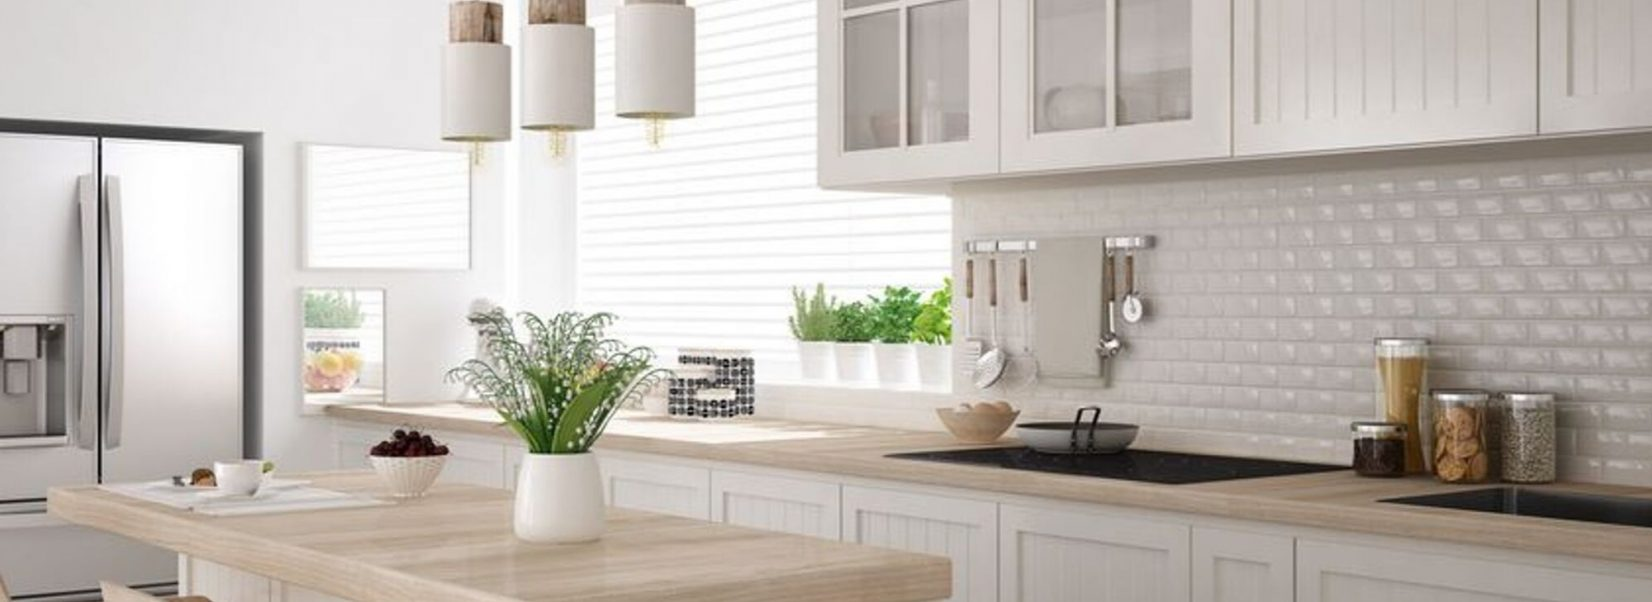 Scandinavian Kitchen Design Style For Your St Louis Home